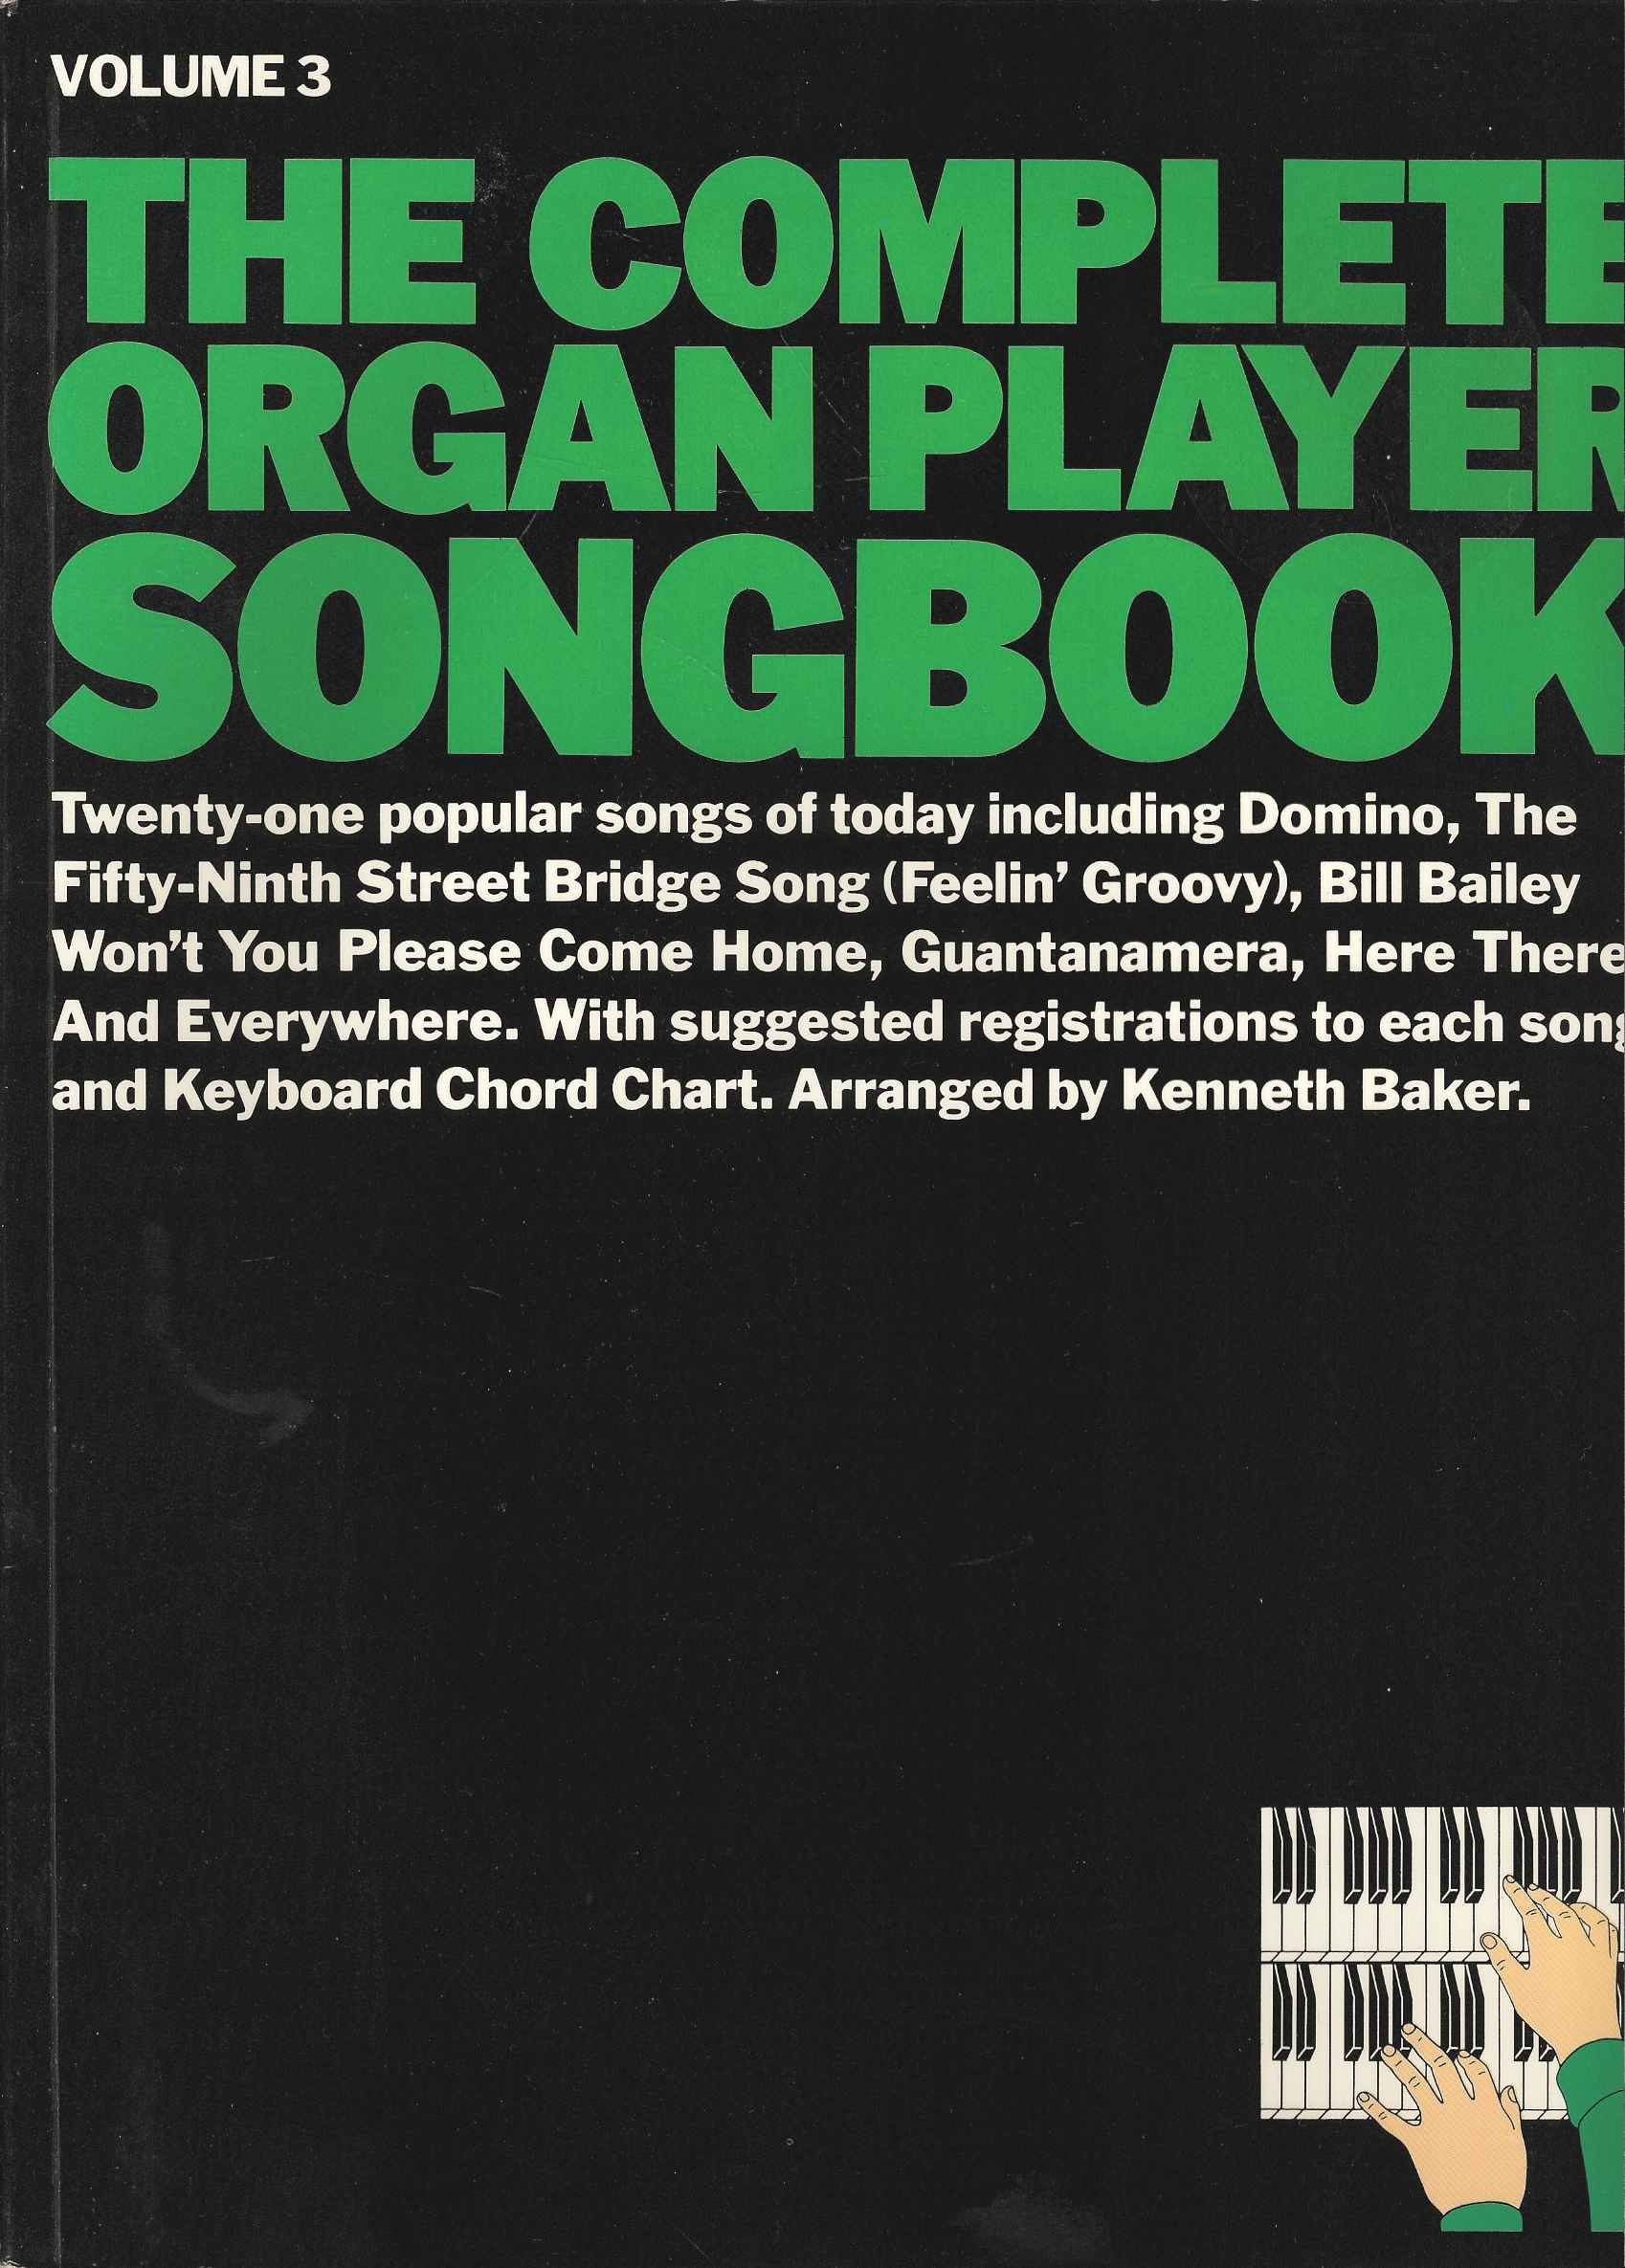 The complete organ player songbook vol 3 amazon music the complete organ player songbook vol 3 amazon music sales corporation kenneth baker 9780825611995 books hexwebz Images